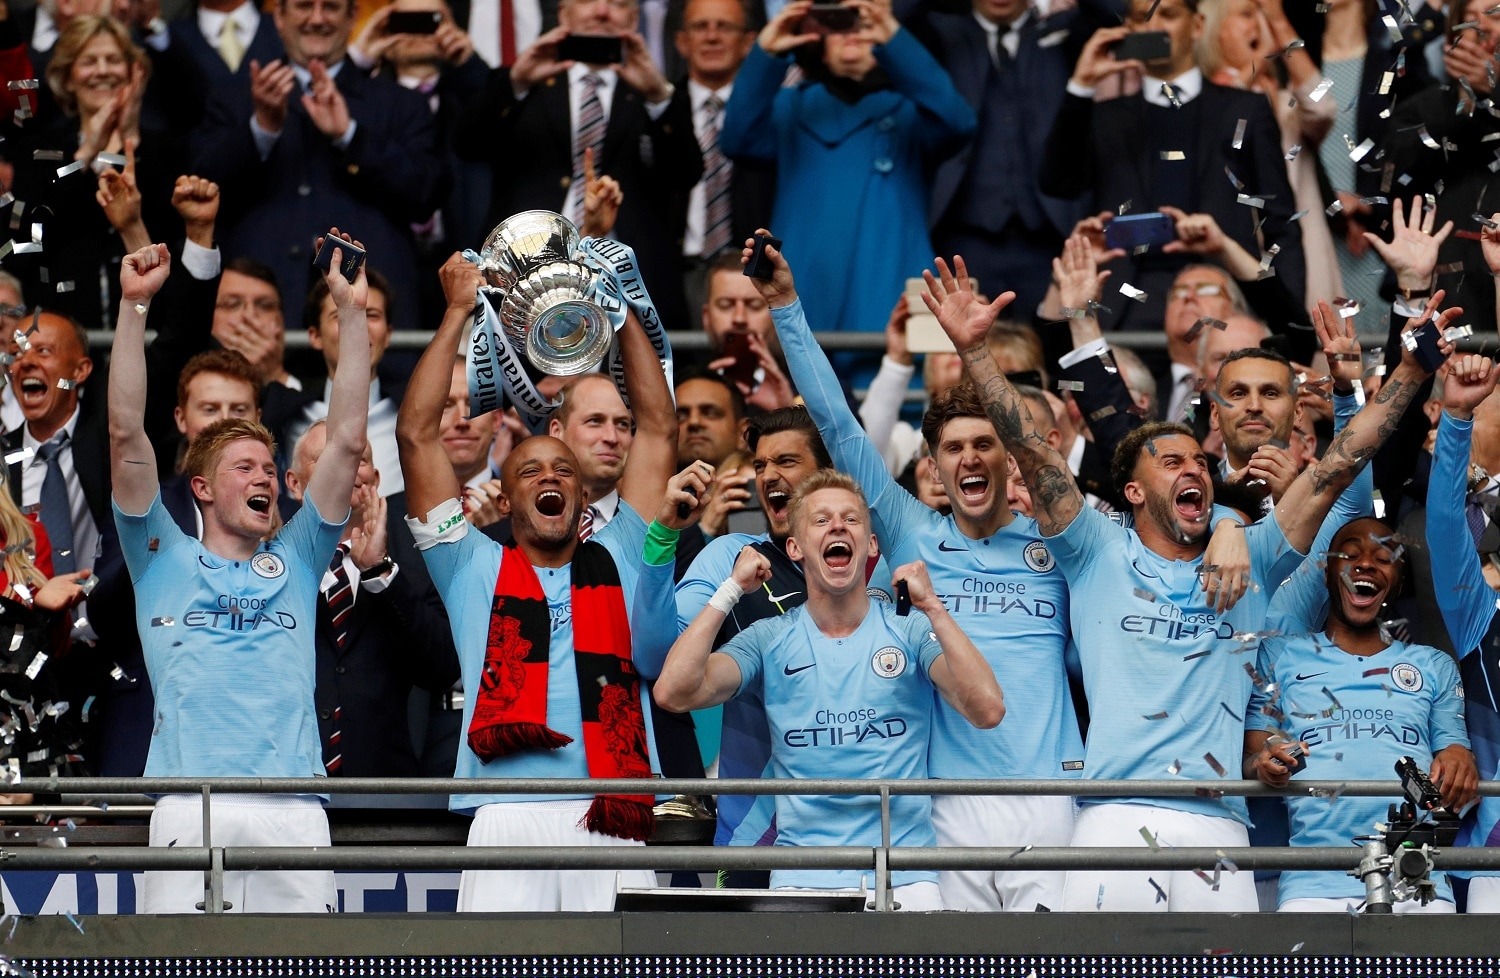 Soccer Football - FA Cup Final - Manchester City v Watford - Wembley Stadium, London, Britain - May 18, 2019 Manchester City's Vincent Kompany lifts the trophy as they celebrate after winning the FA Cup Action Images via Reuters/John Sibley